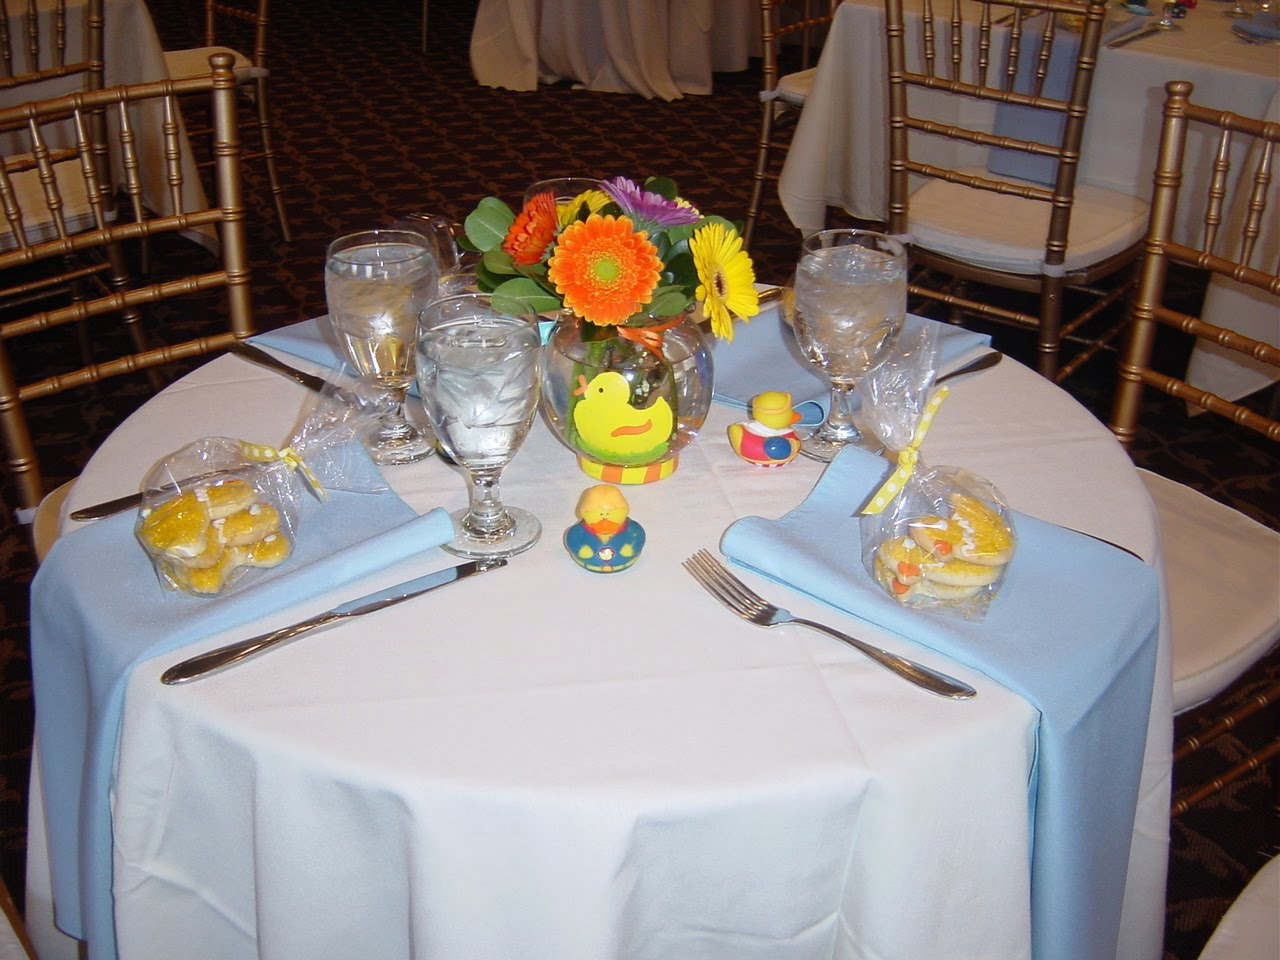 Whimsical Welcomes Floral Design: Corey's Baby Shower - Rubber